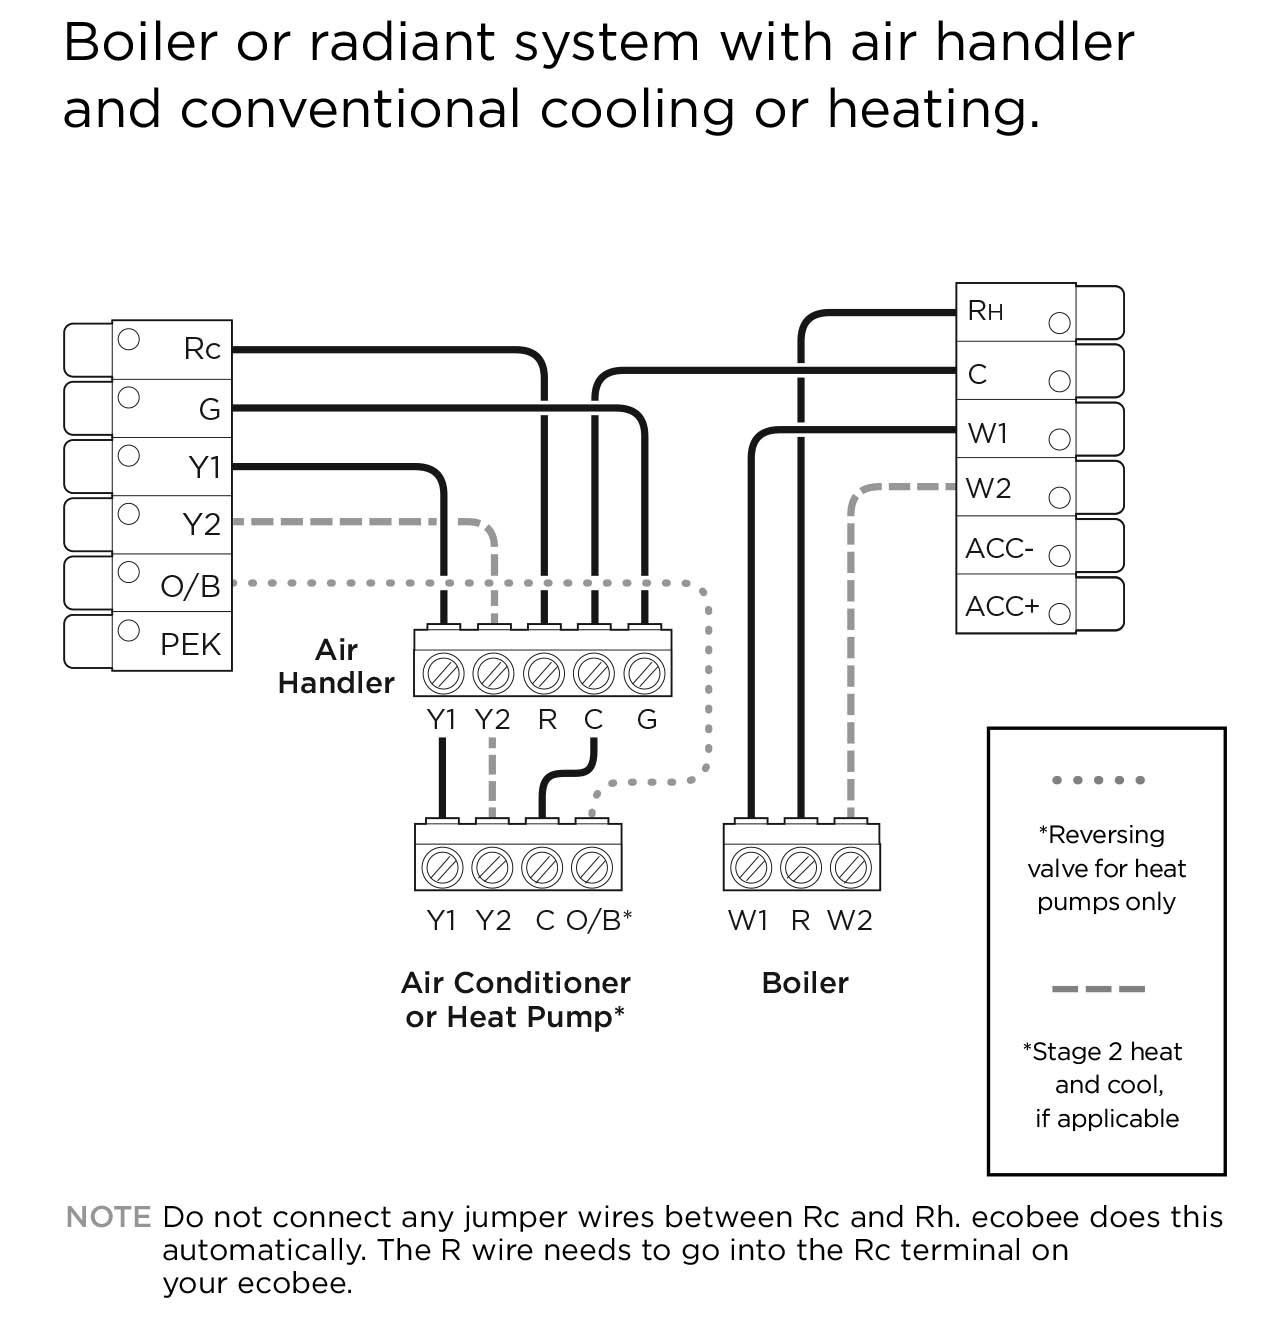 Ecobee4 Wiring Diagrams – Ecobee Support - Heat Pump Wiring Diagram